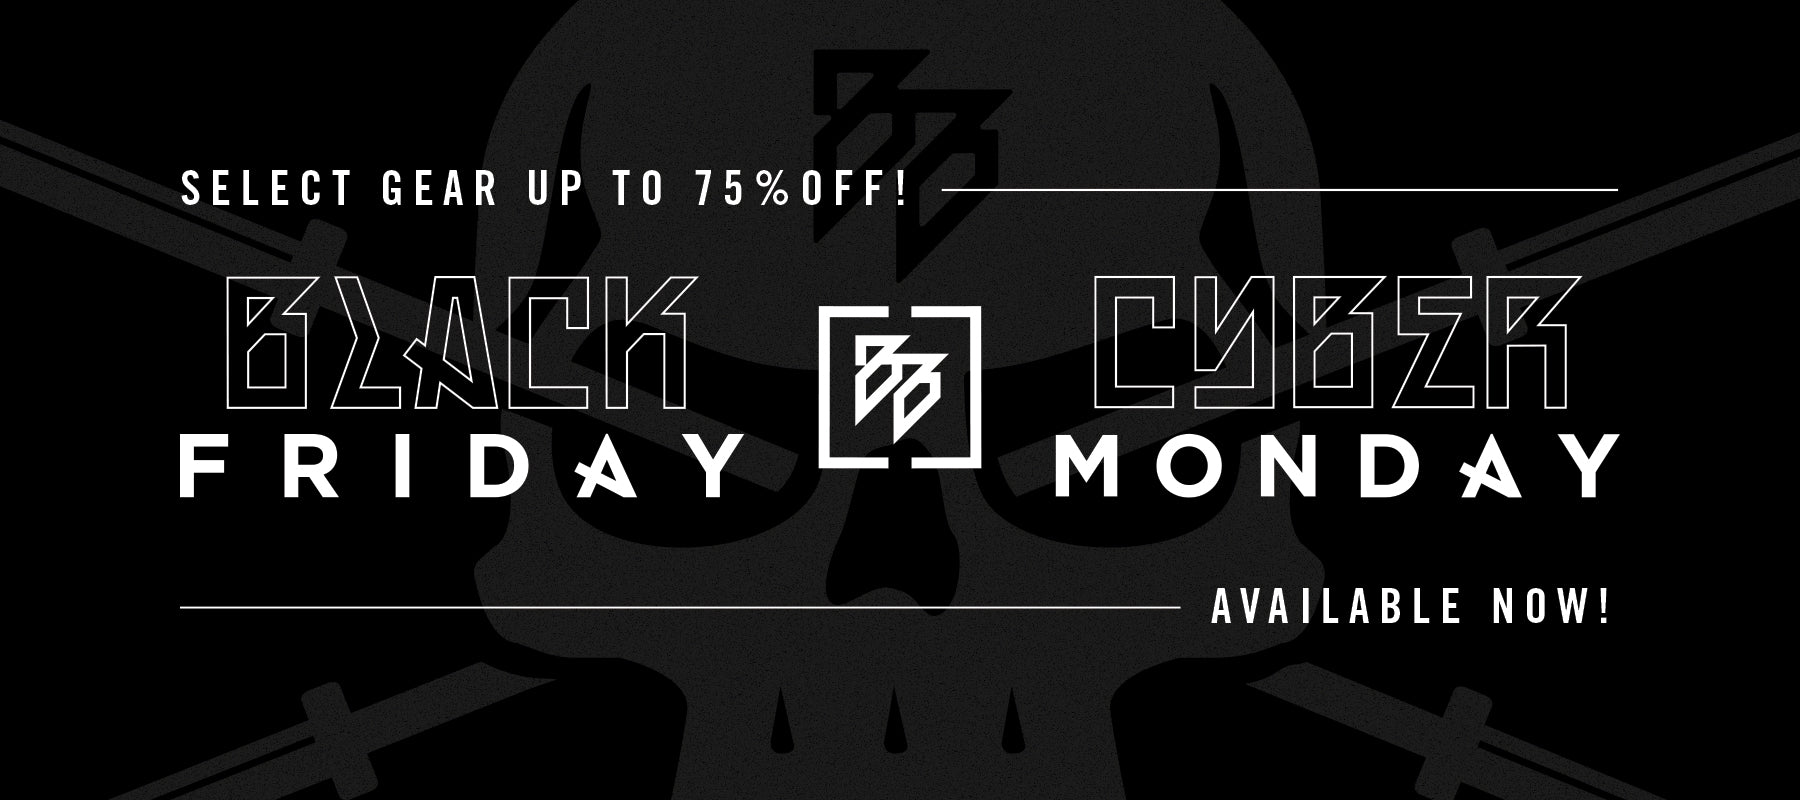 Black Friday - Cyber Monday Discounted Items